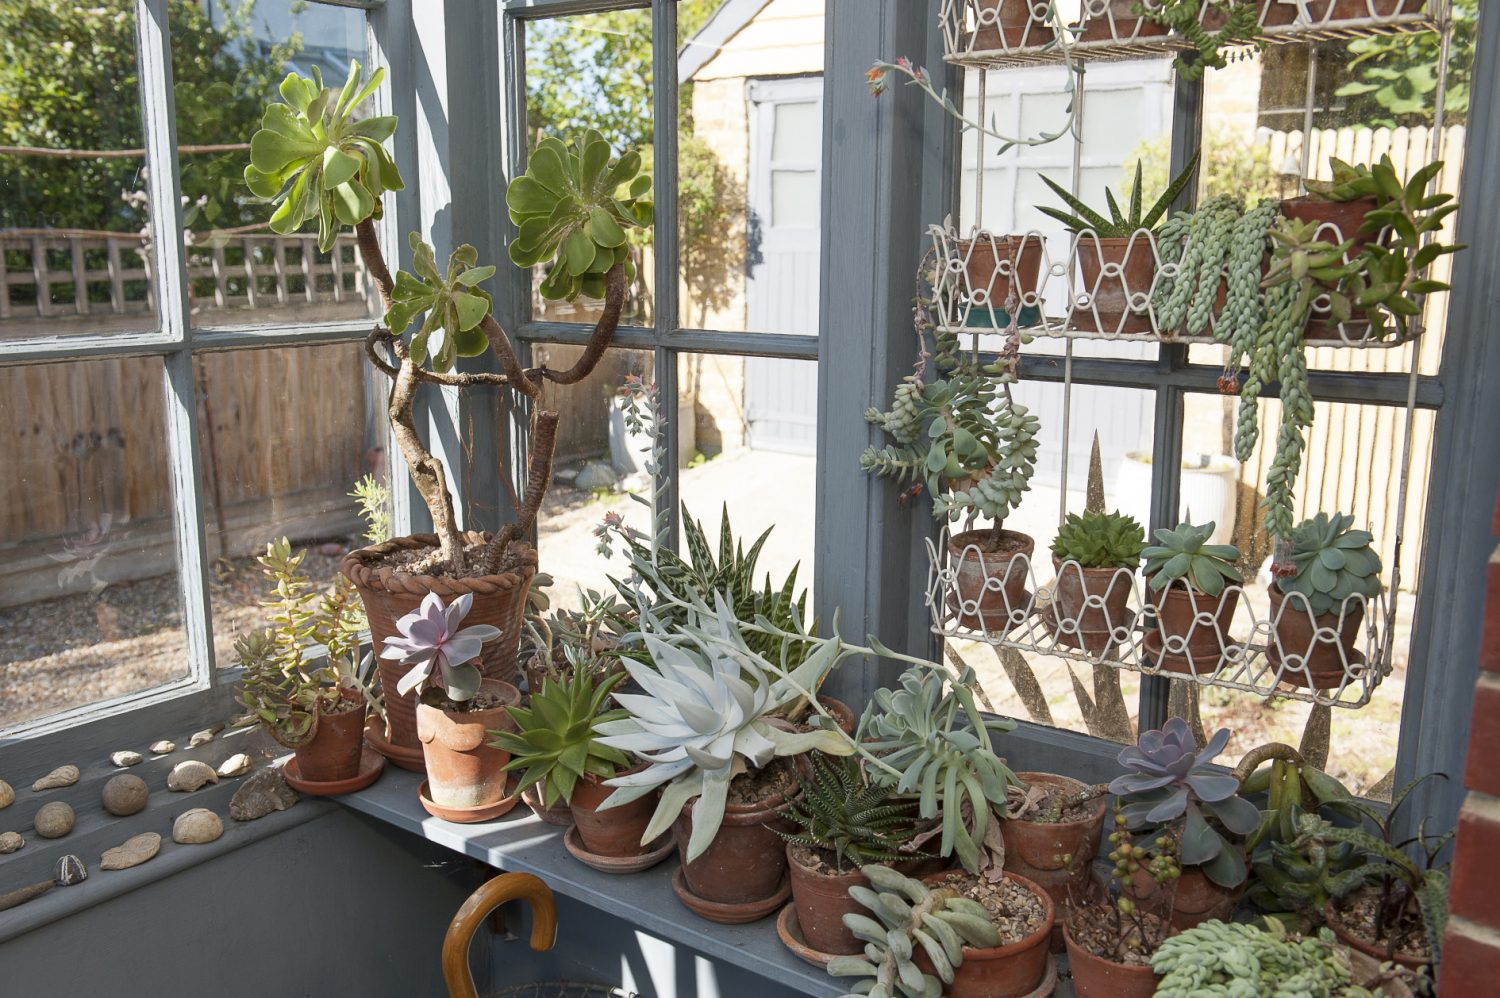 A side porch full of curious succulents makes it hard not to dally on your way in or out of the house